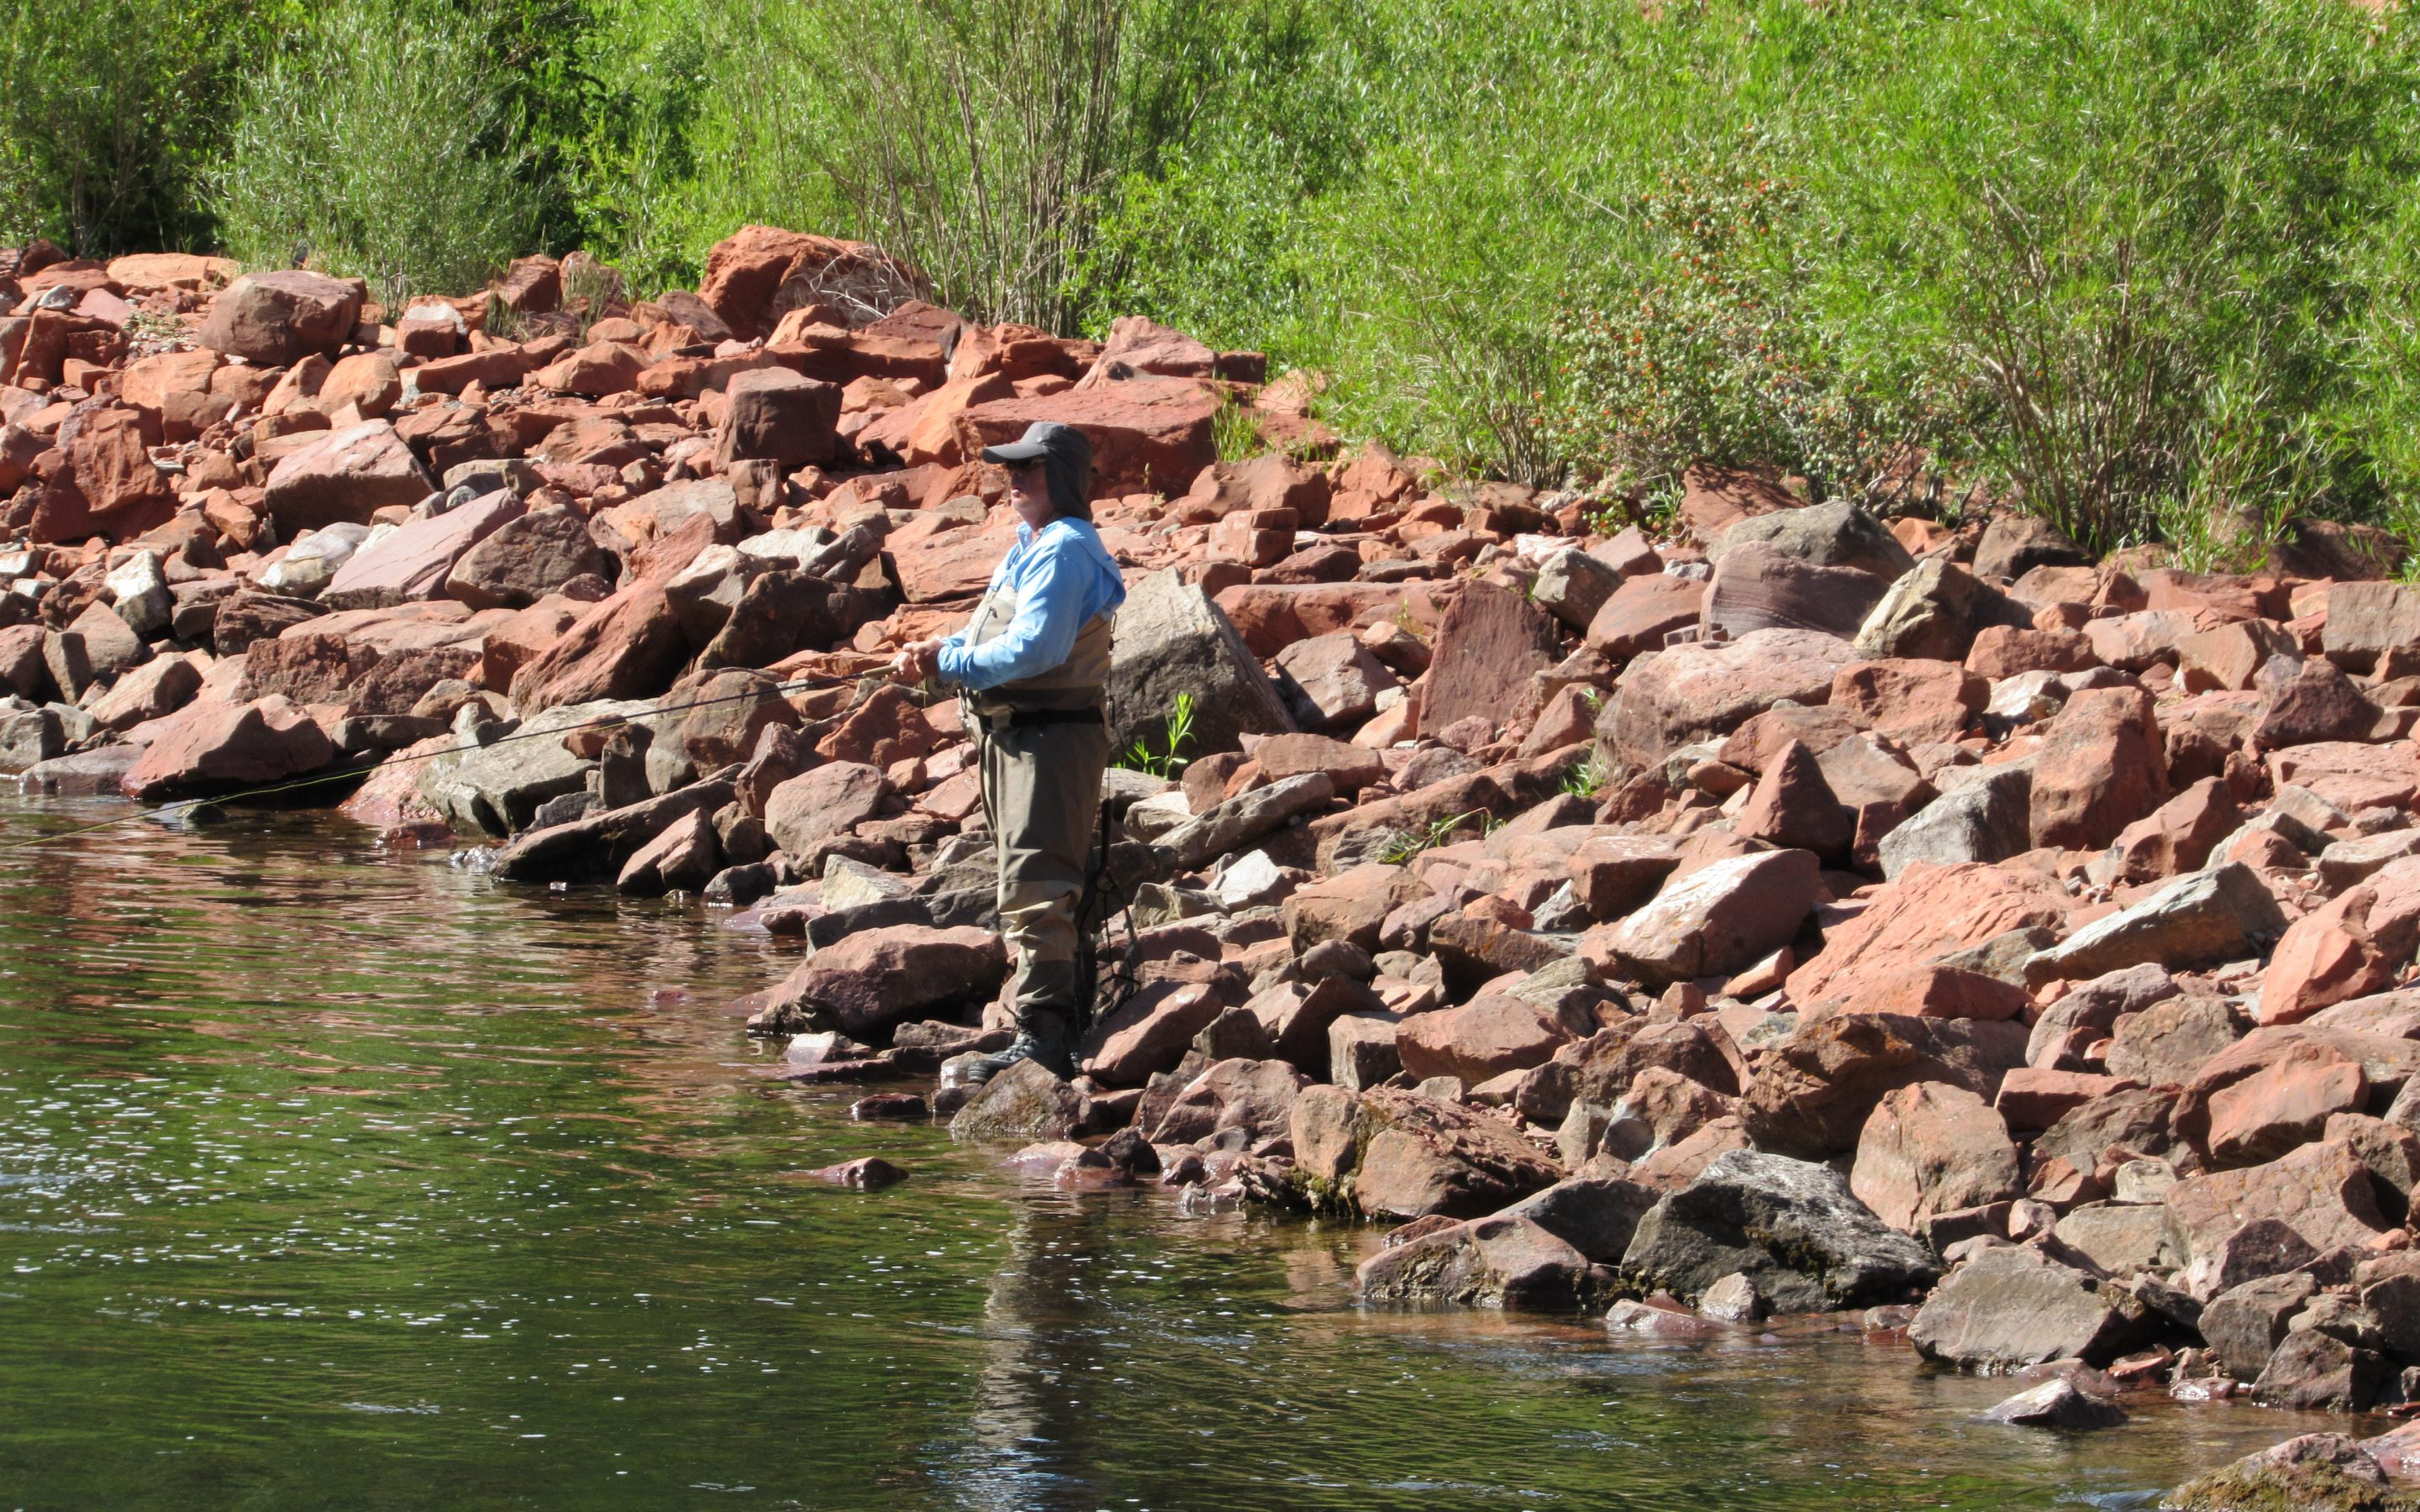 Angler on the Roaring Fork River upstream of Basalt in Pitkin County. The county is one of just two statewide that now allows use of graywater in homes and businesses. Credit: Jerd Smith